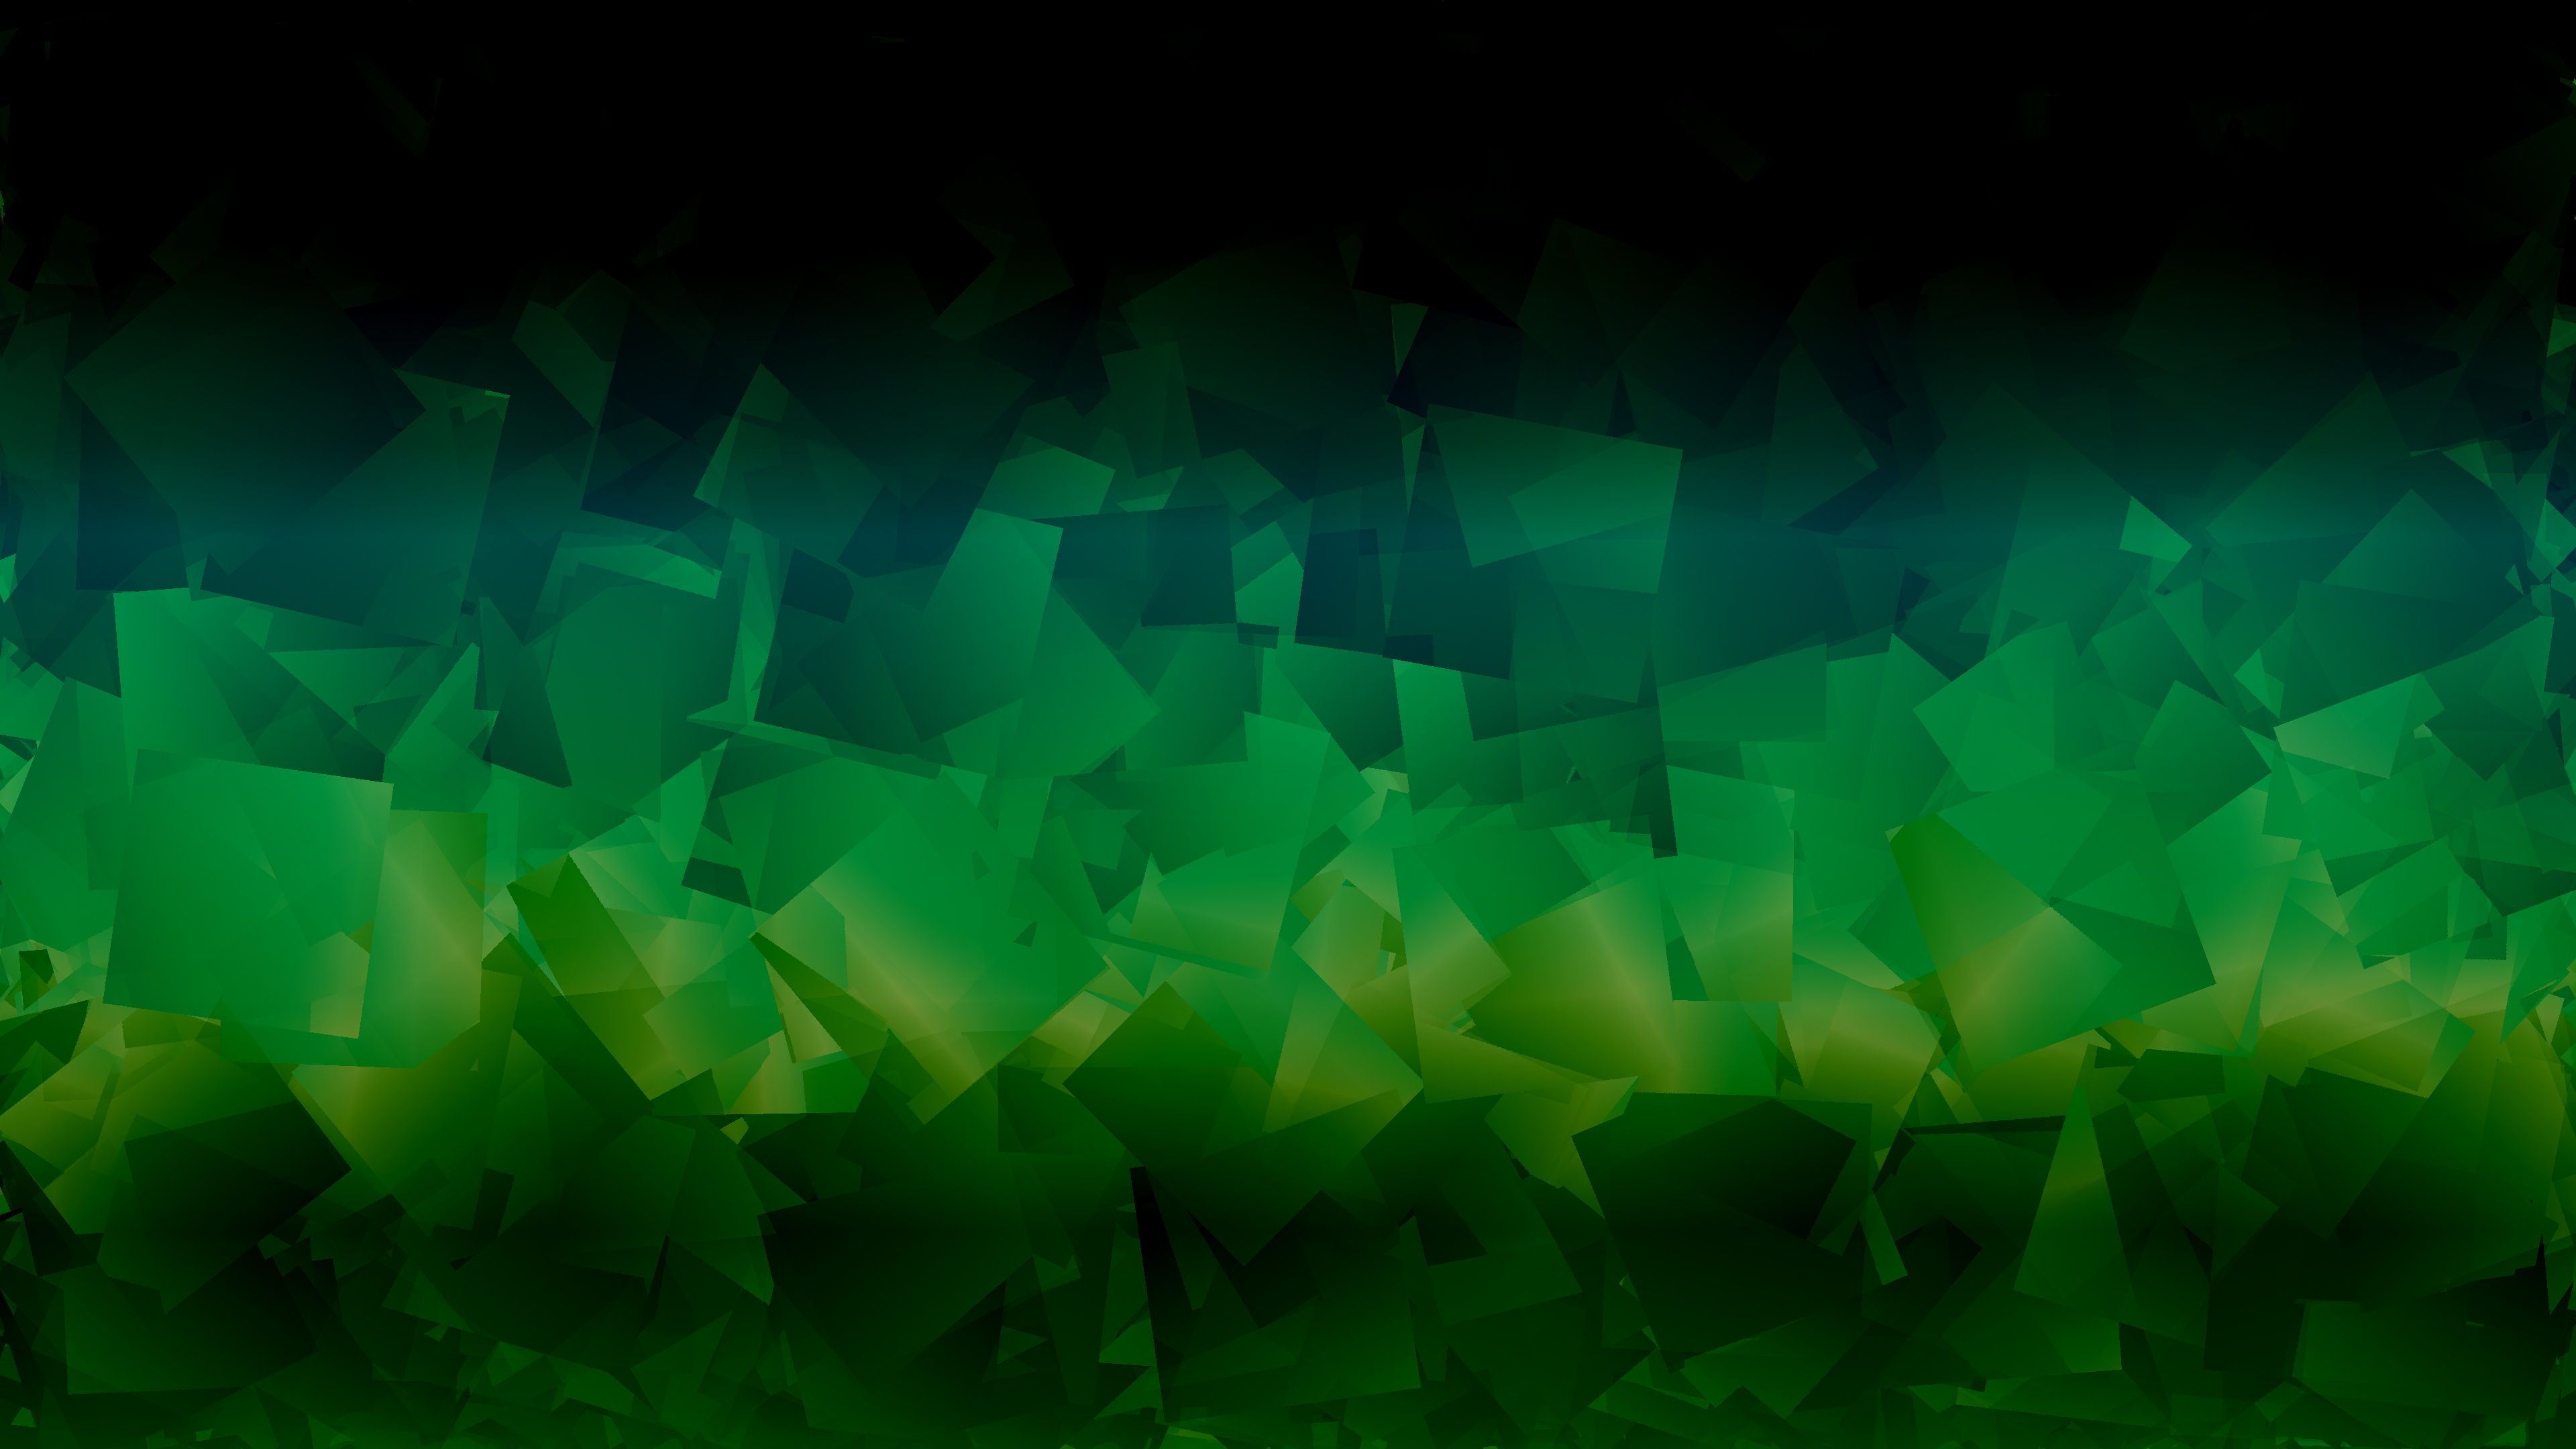 Dark Green Abstract Shapes 4k Hd Abstract 4k Wallpapers Images Backgrounds Photos And Pictures